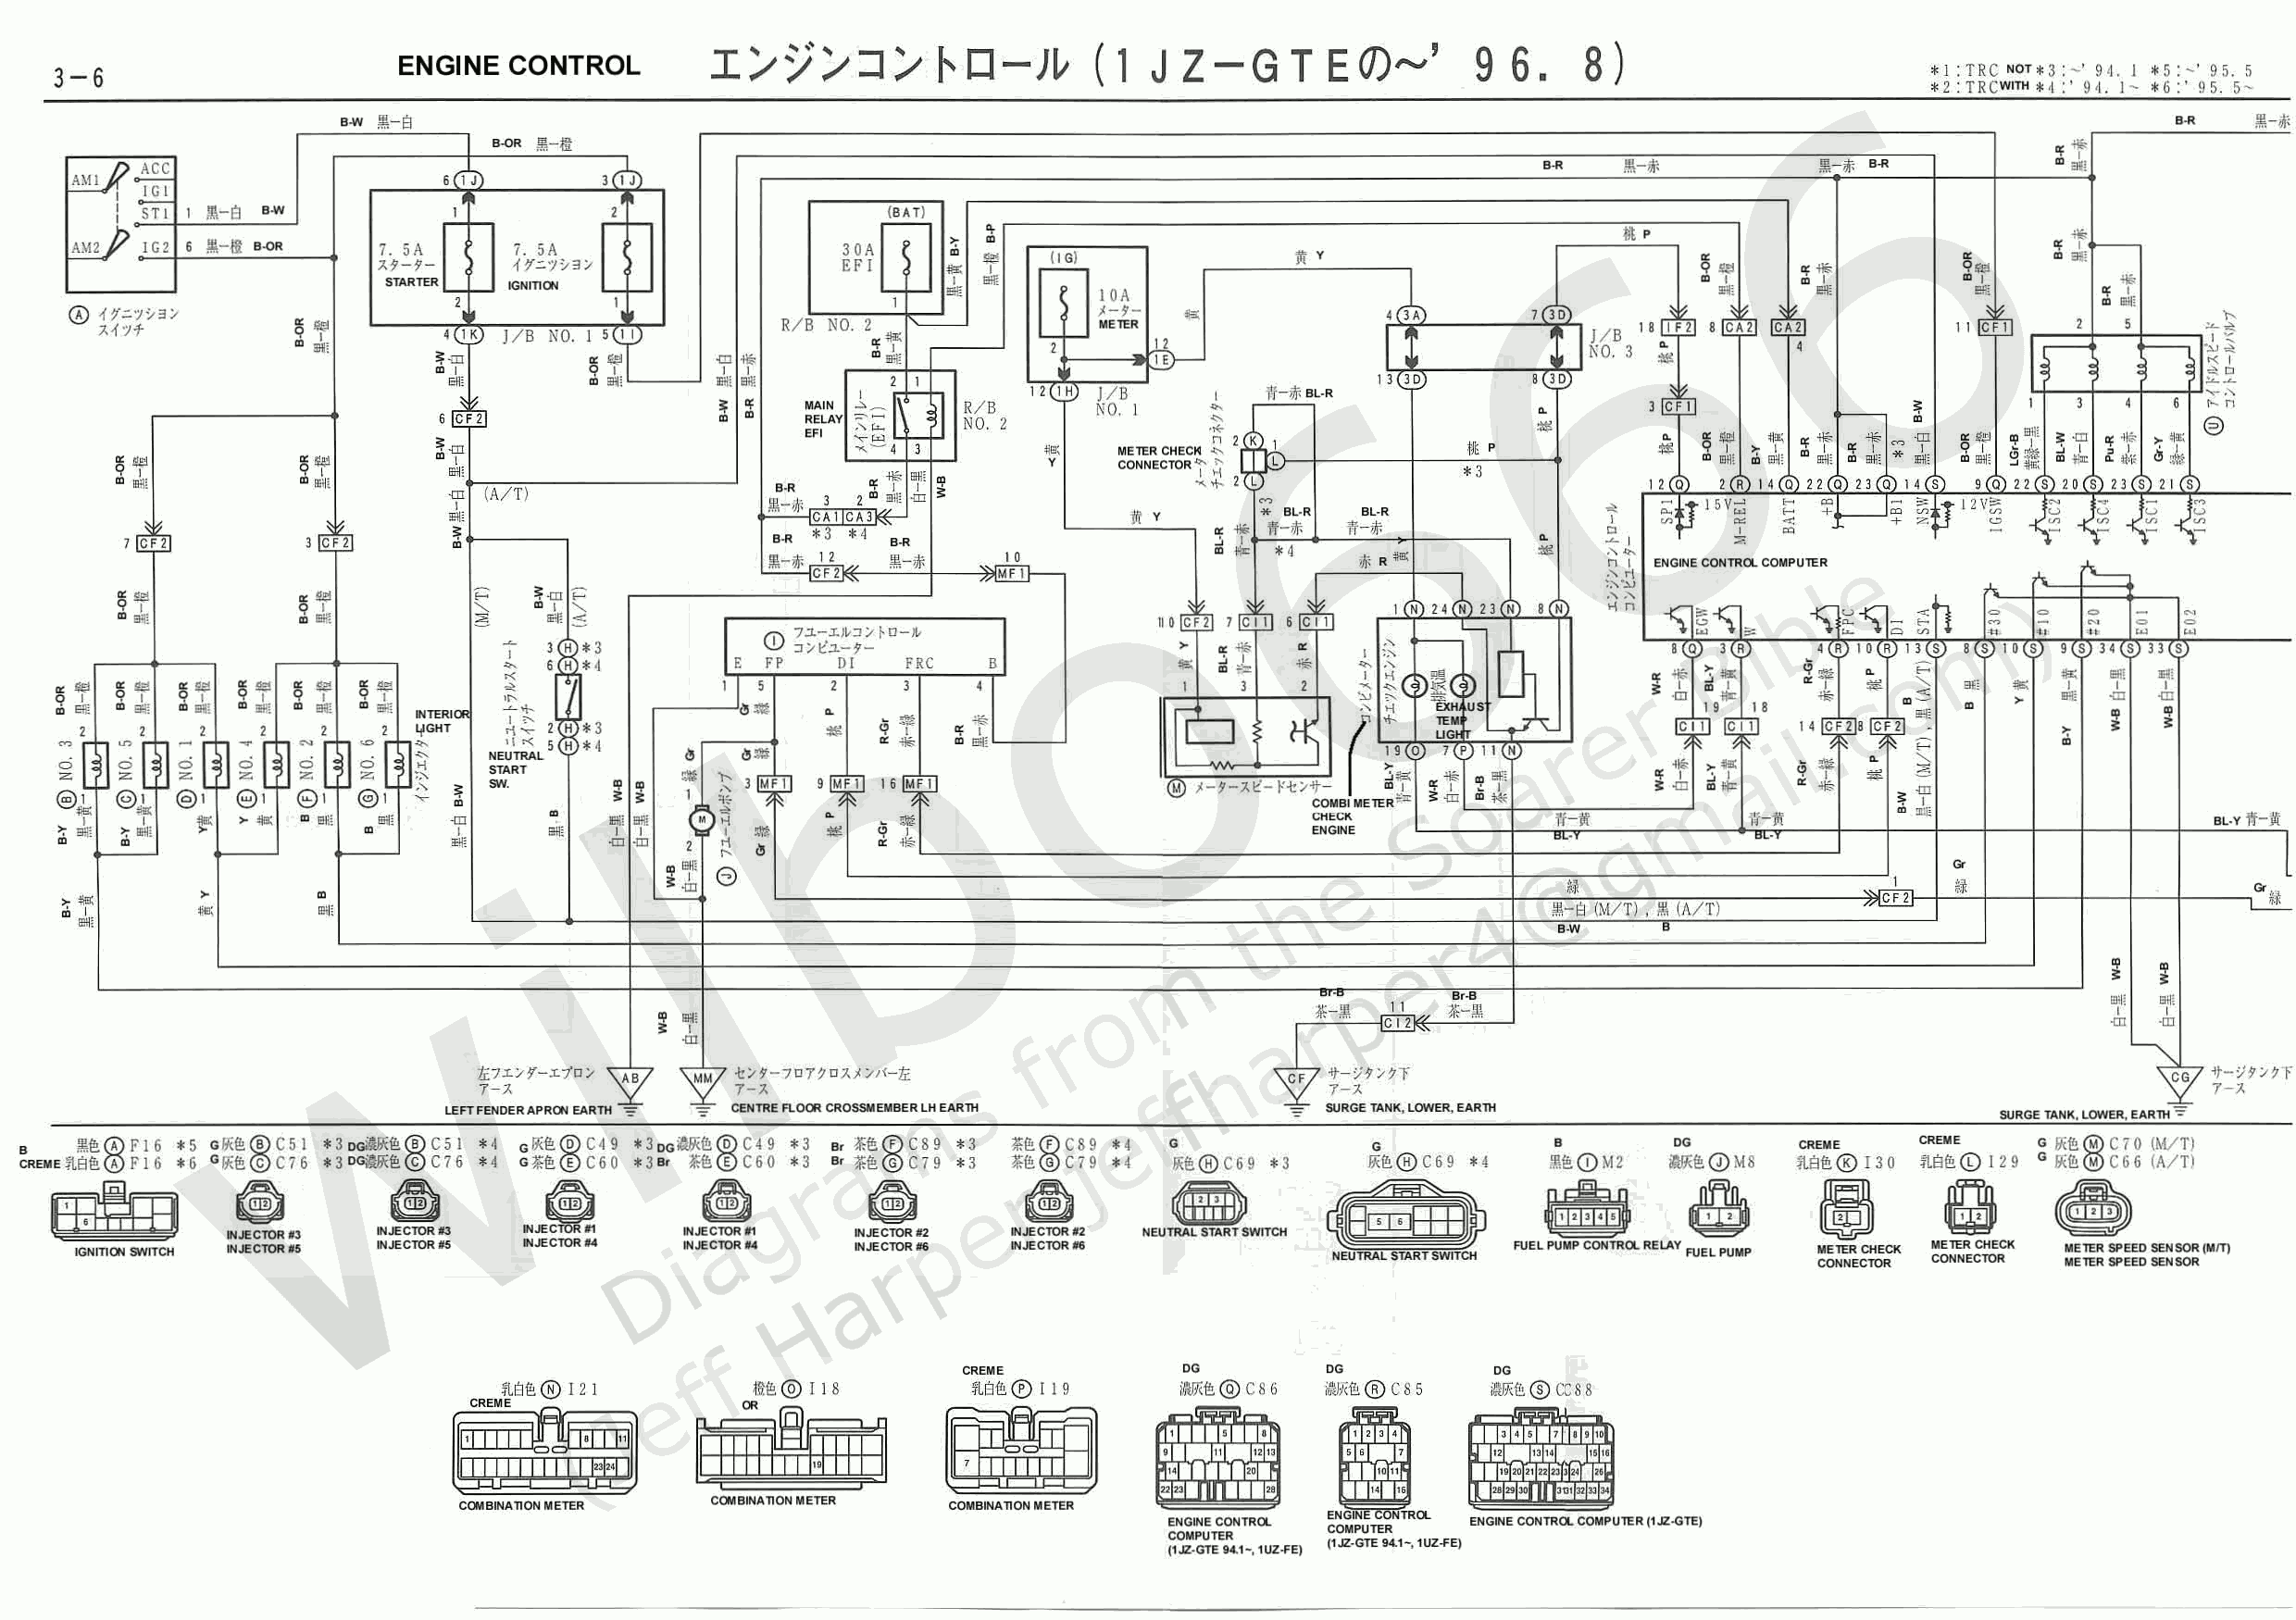 xZZ3x Electrical Wiring Diagram 6737105 3 6?resize\=665%2C469 vauxhall wiring diagram html programming language diagram, url Marketing Functions Diagram at soozxer.org